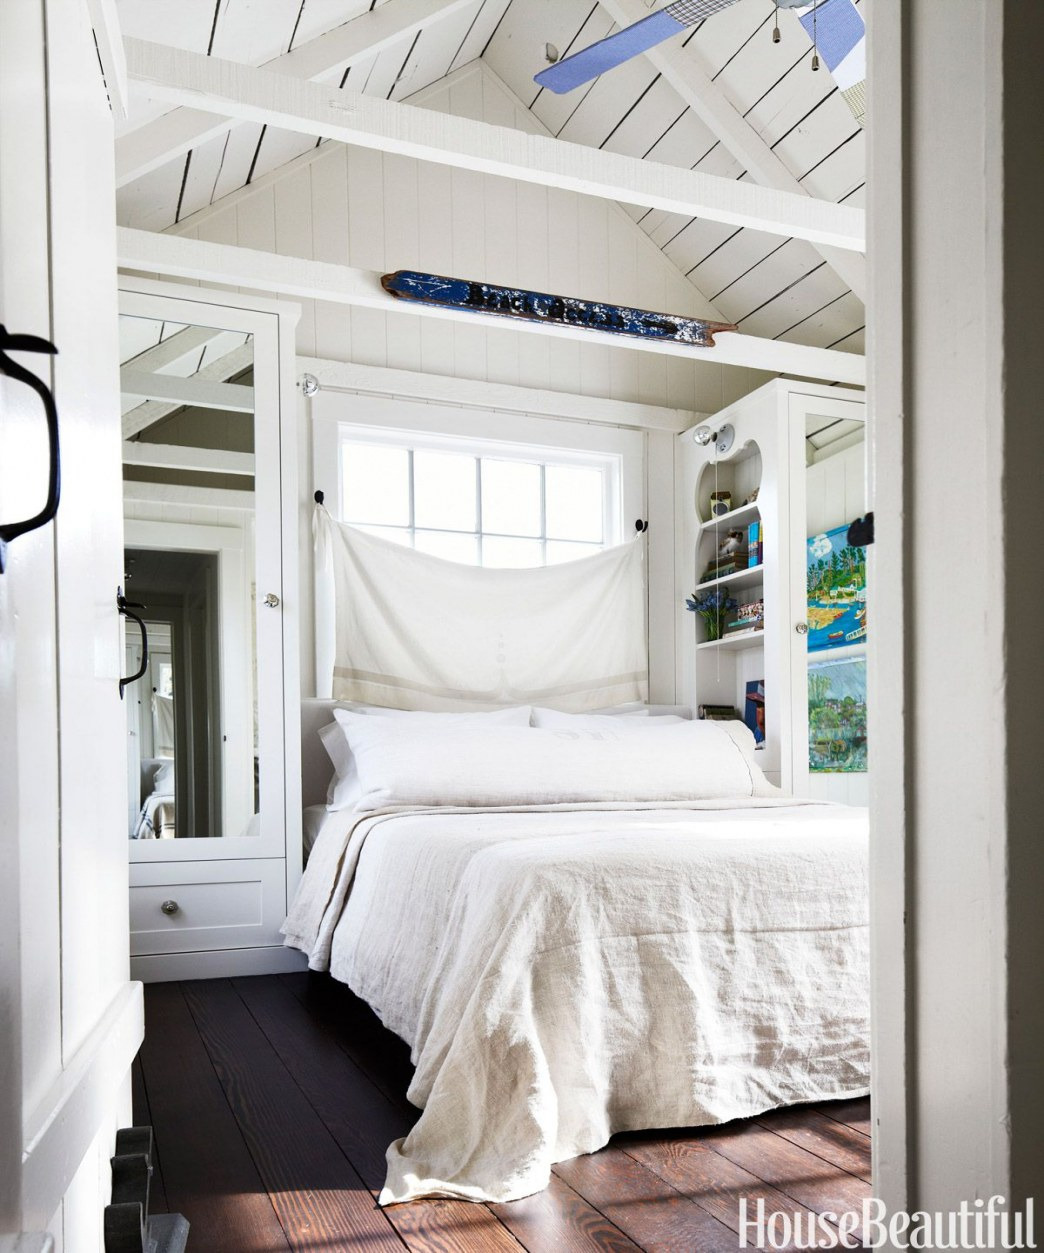 Good Ideas for Small Bedrooms New Small Bedroom Design Ideas How to Decorate A Bud Very Home